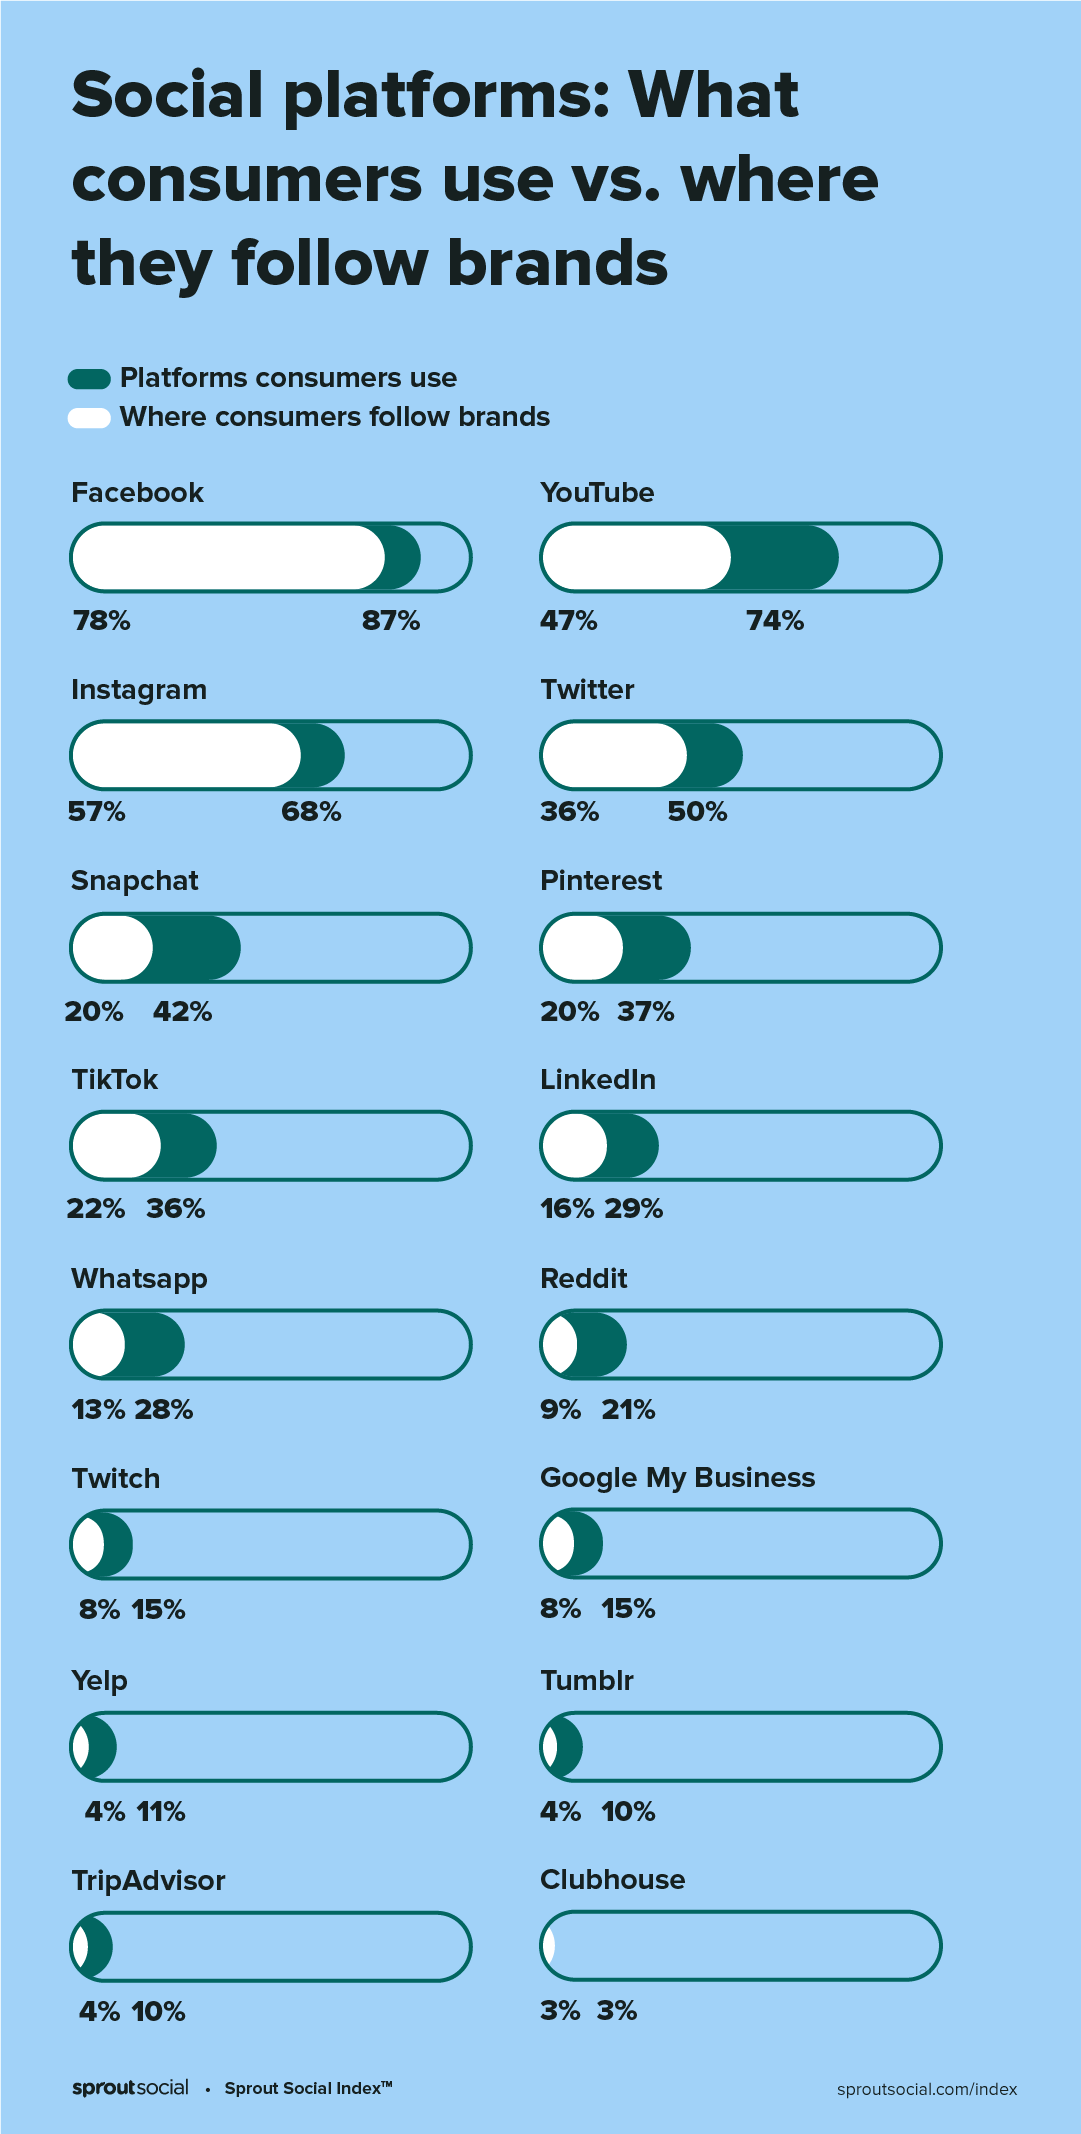 social platforms customer use, led by Facebook, YouTube and Instagram